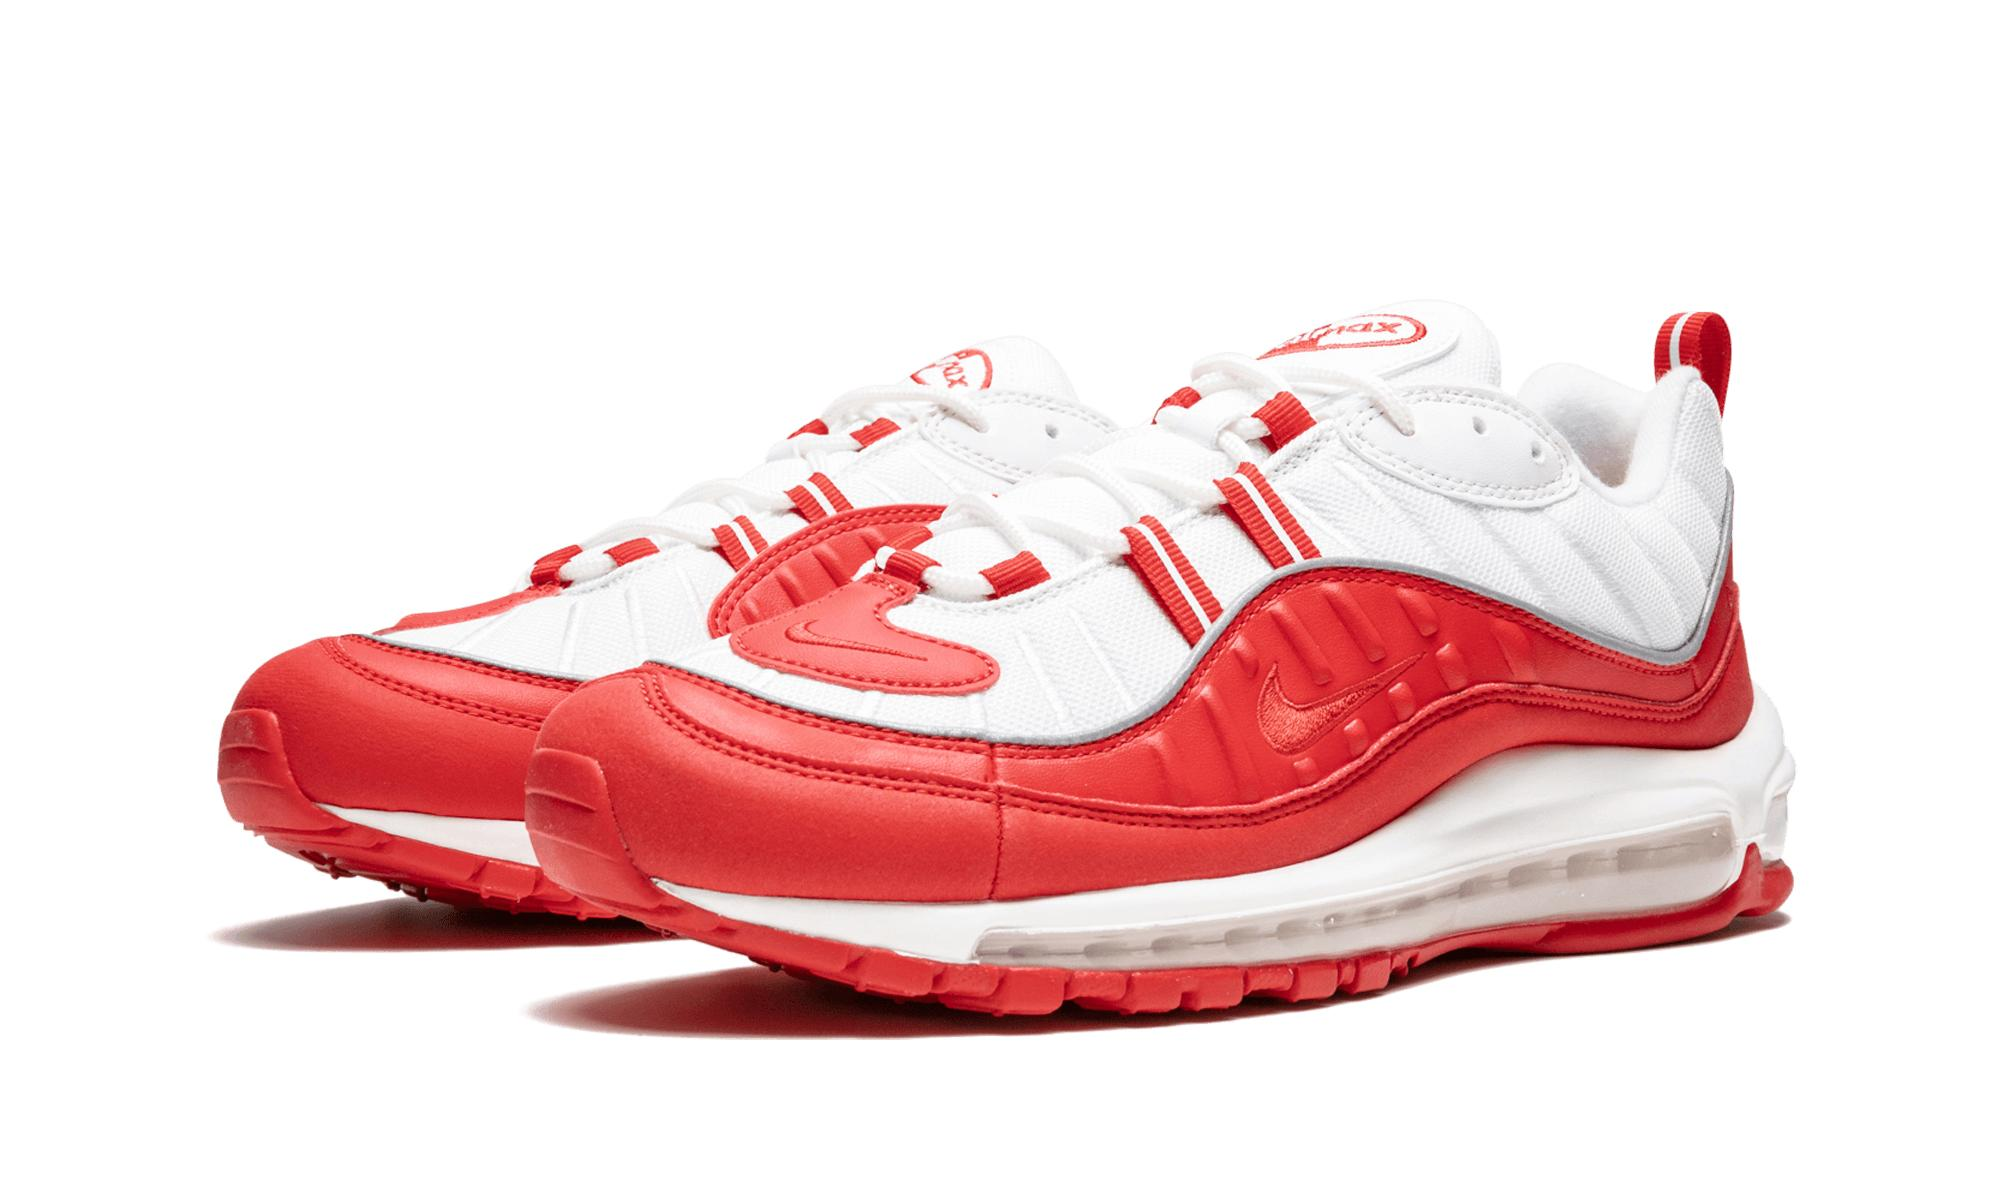 brand new 25837 80188 Men's Red Air Max 98